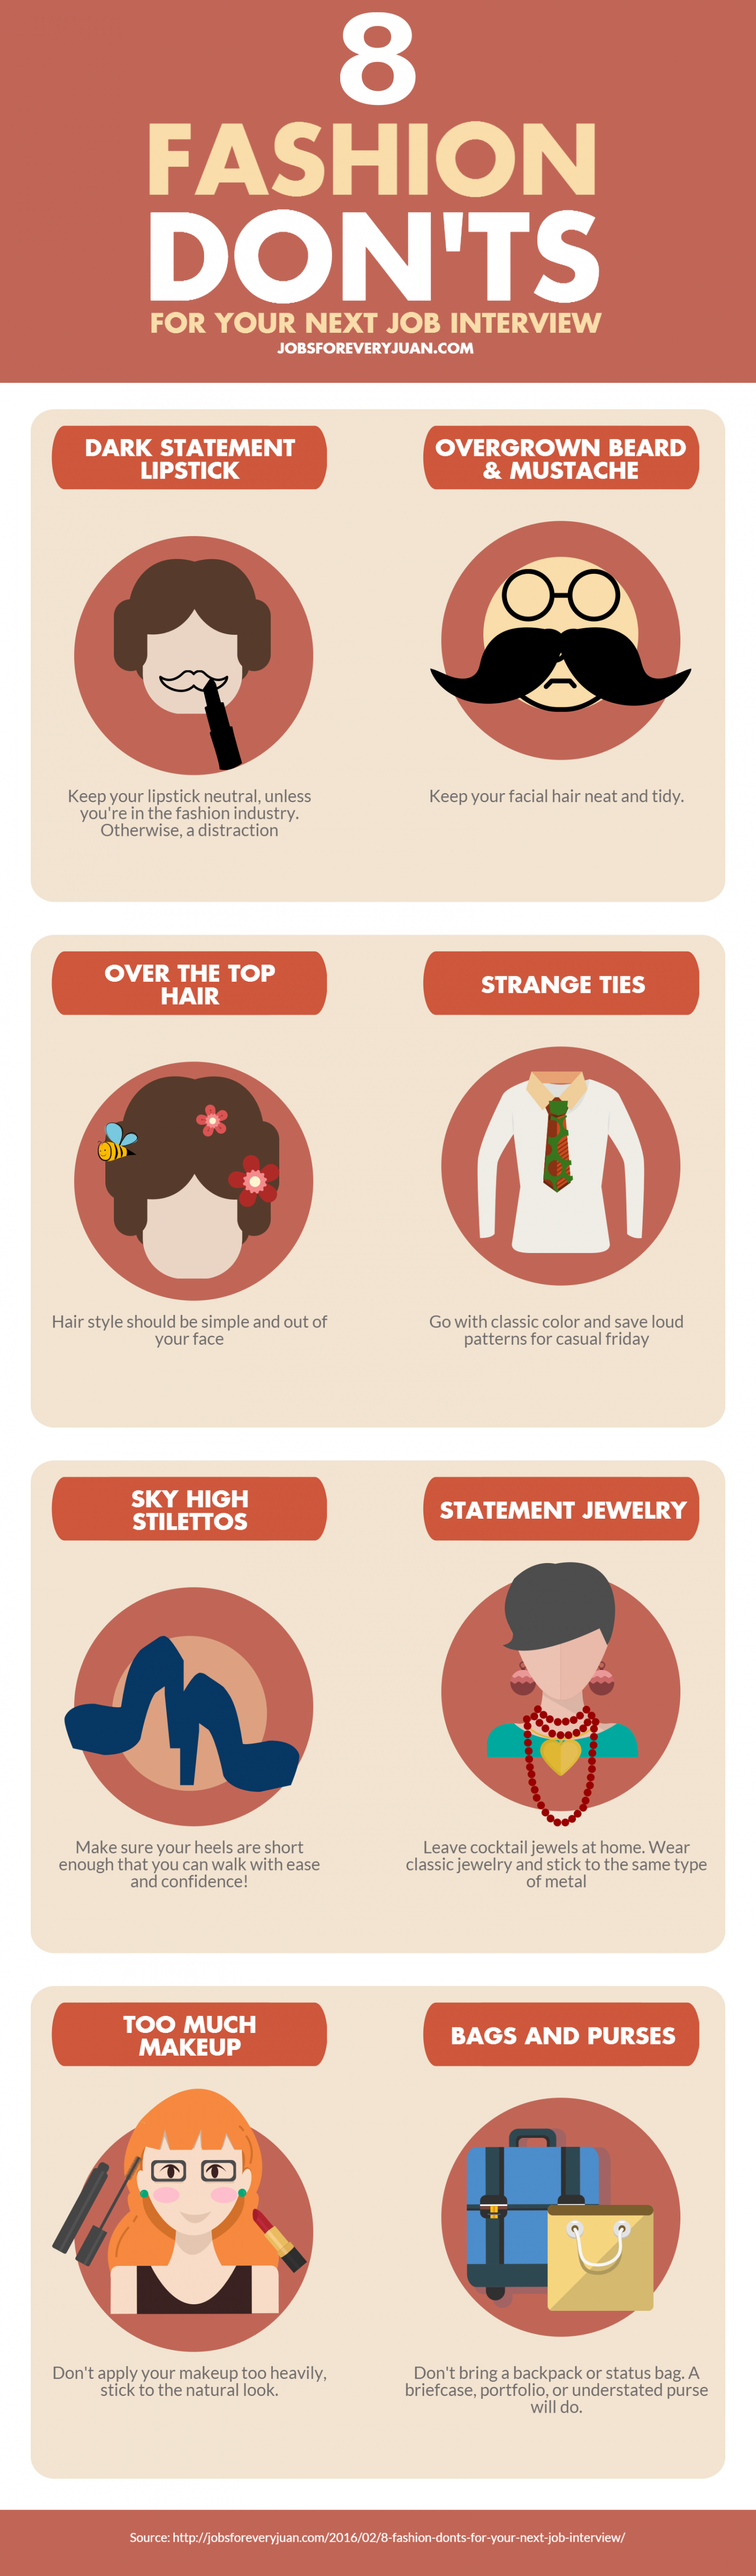 8 Fashion Donu0027ts For Your Next Job Interview Infographic